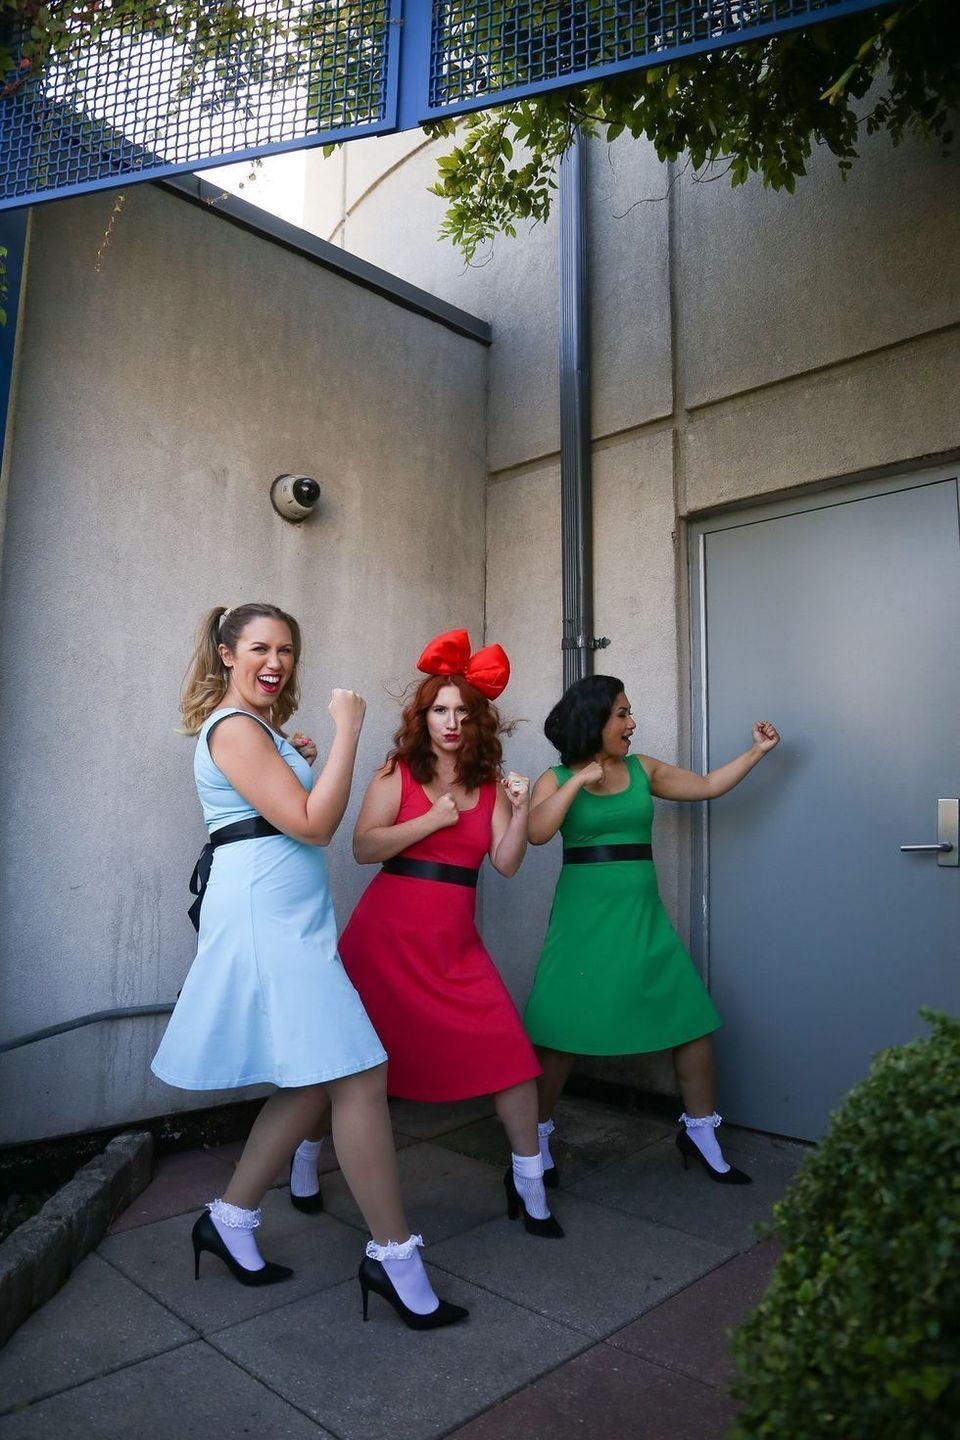 """<p>Odds are, you spent hours watching <em>The Powerpuff Girls</em> on TV as a kid. This nostalgia-inducing costume is simple enough to re-create, and it'll have all of your other friends excitedly reminiscing. </p><p><strong>Get the tutorial at <a href=""""http://livingaftermidnite.com/2019/10/group-halloween-costumes-that-will-win-you-best-dressed.html"""" rel=""""nofollow noopener"""" target=""""_blank"""" data-ylk=""""slk:Living After Midnite"""" class=""""link rapid-noclick-resp"""">Living After Midnite</a>.</strong></p><p><a class=""""link rapid-noclick-resp"""" href=""""https://go.redirectingat.com?id=74968X1596630&url=https%3A%2F%2Fwww.walmart.com%2Fsearch%2F%3Fquery%3Druffle%2Bsocks&sref=https%3A%2F%2Fwww.thepioneerwoman.com%2Fhome-lifestyle%2Fcrafts-diy%2Fg37066817%2Fhalloween-costumes-for-3-people%2F"""" rel=""""nofollow noopener"""" target=""""_blank"""" data-ylk=""""slk:SHOP RUFFLE SOCKS""""><strong>SHOP RUFFLE SOCKS</strong></a></p>"""